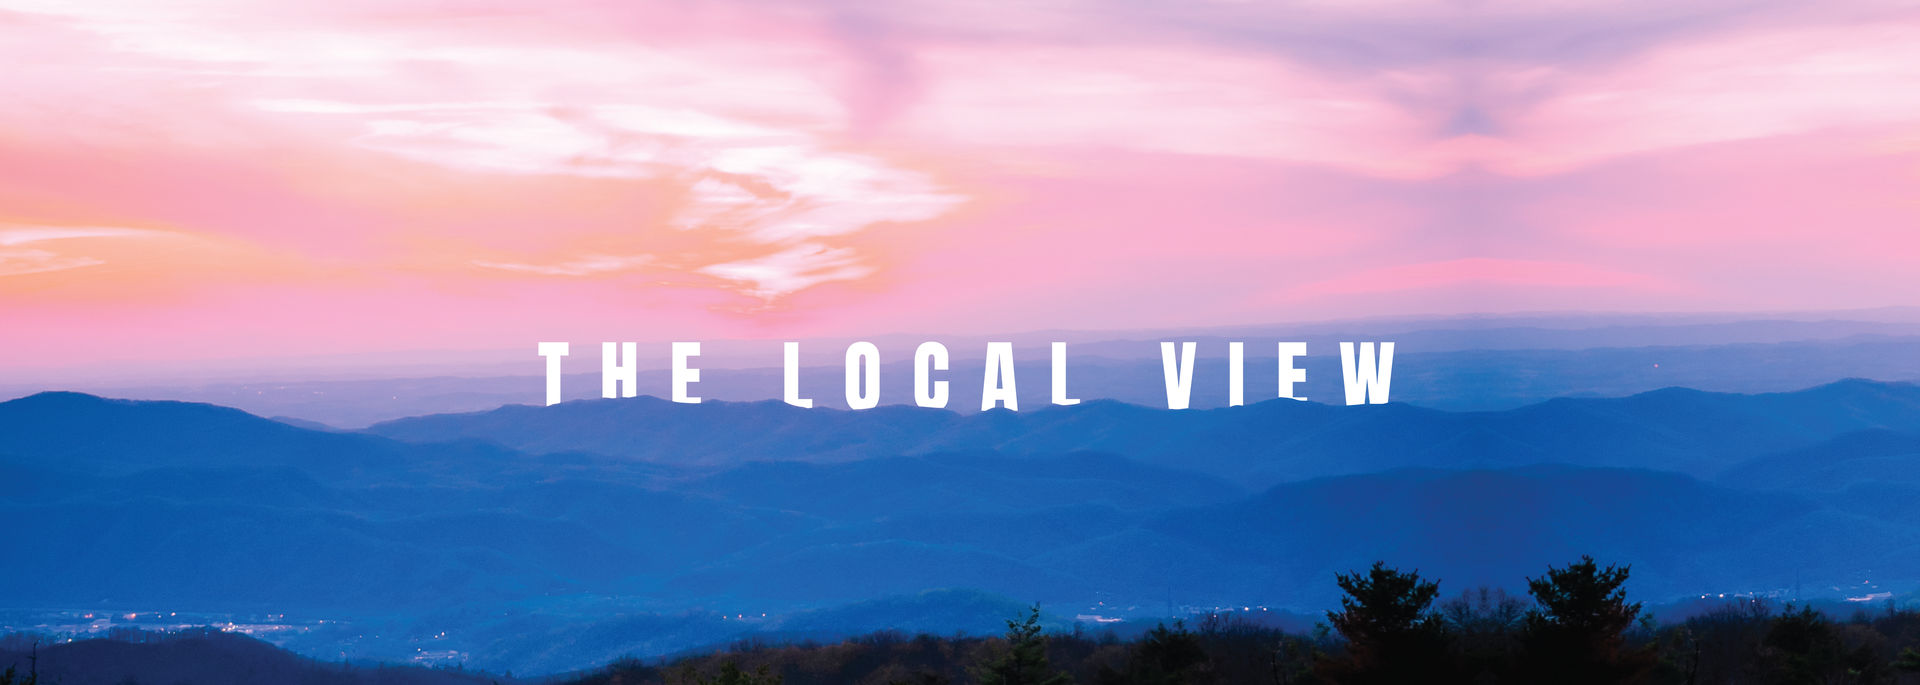 The Local View